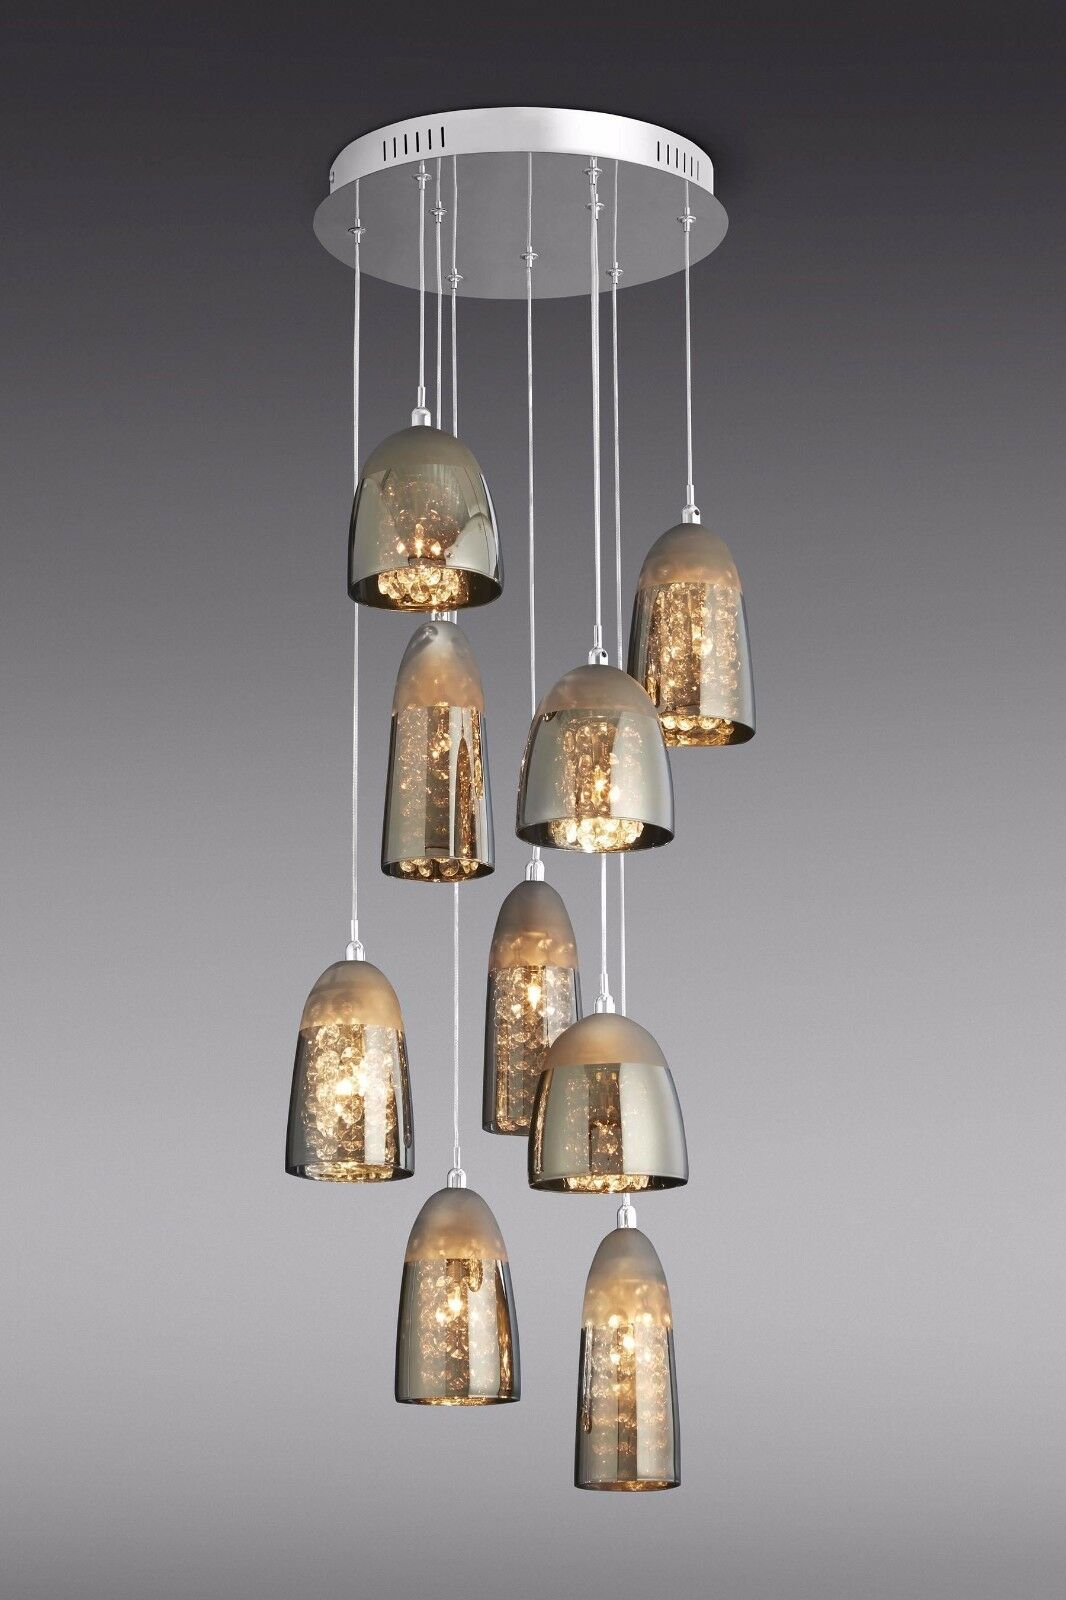 Next phoebe 9 light cluster pendant ceiling lighting chandelier new picclick uk - Ceiling lights and chandeliers ...